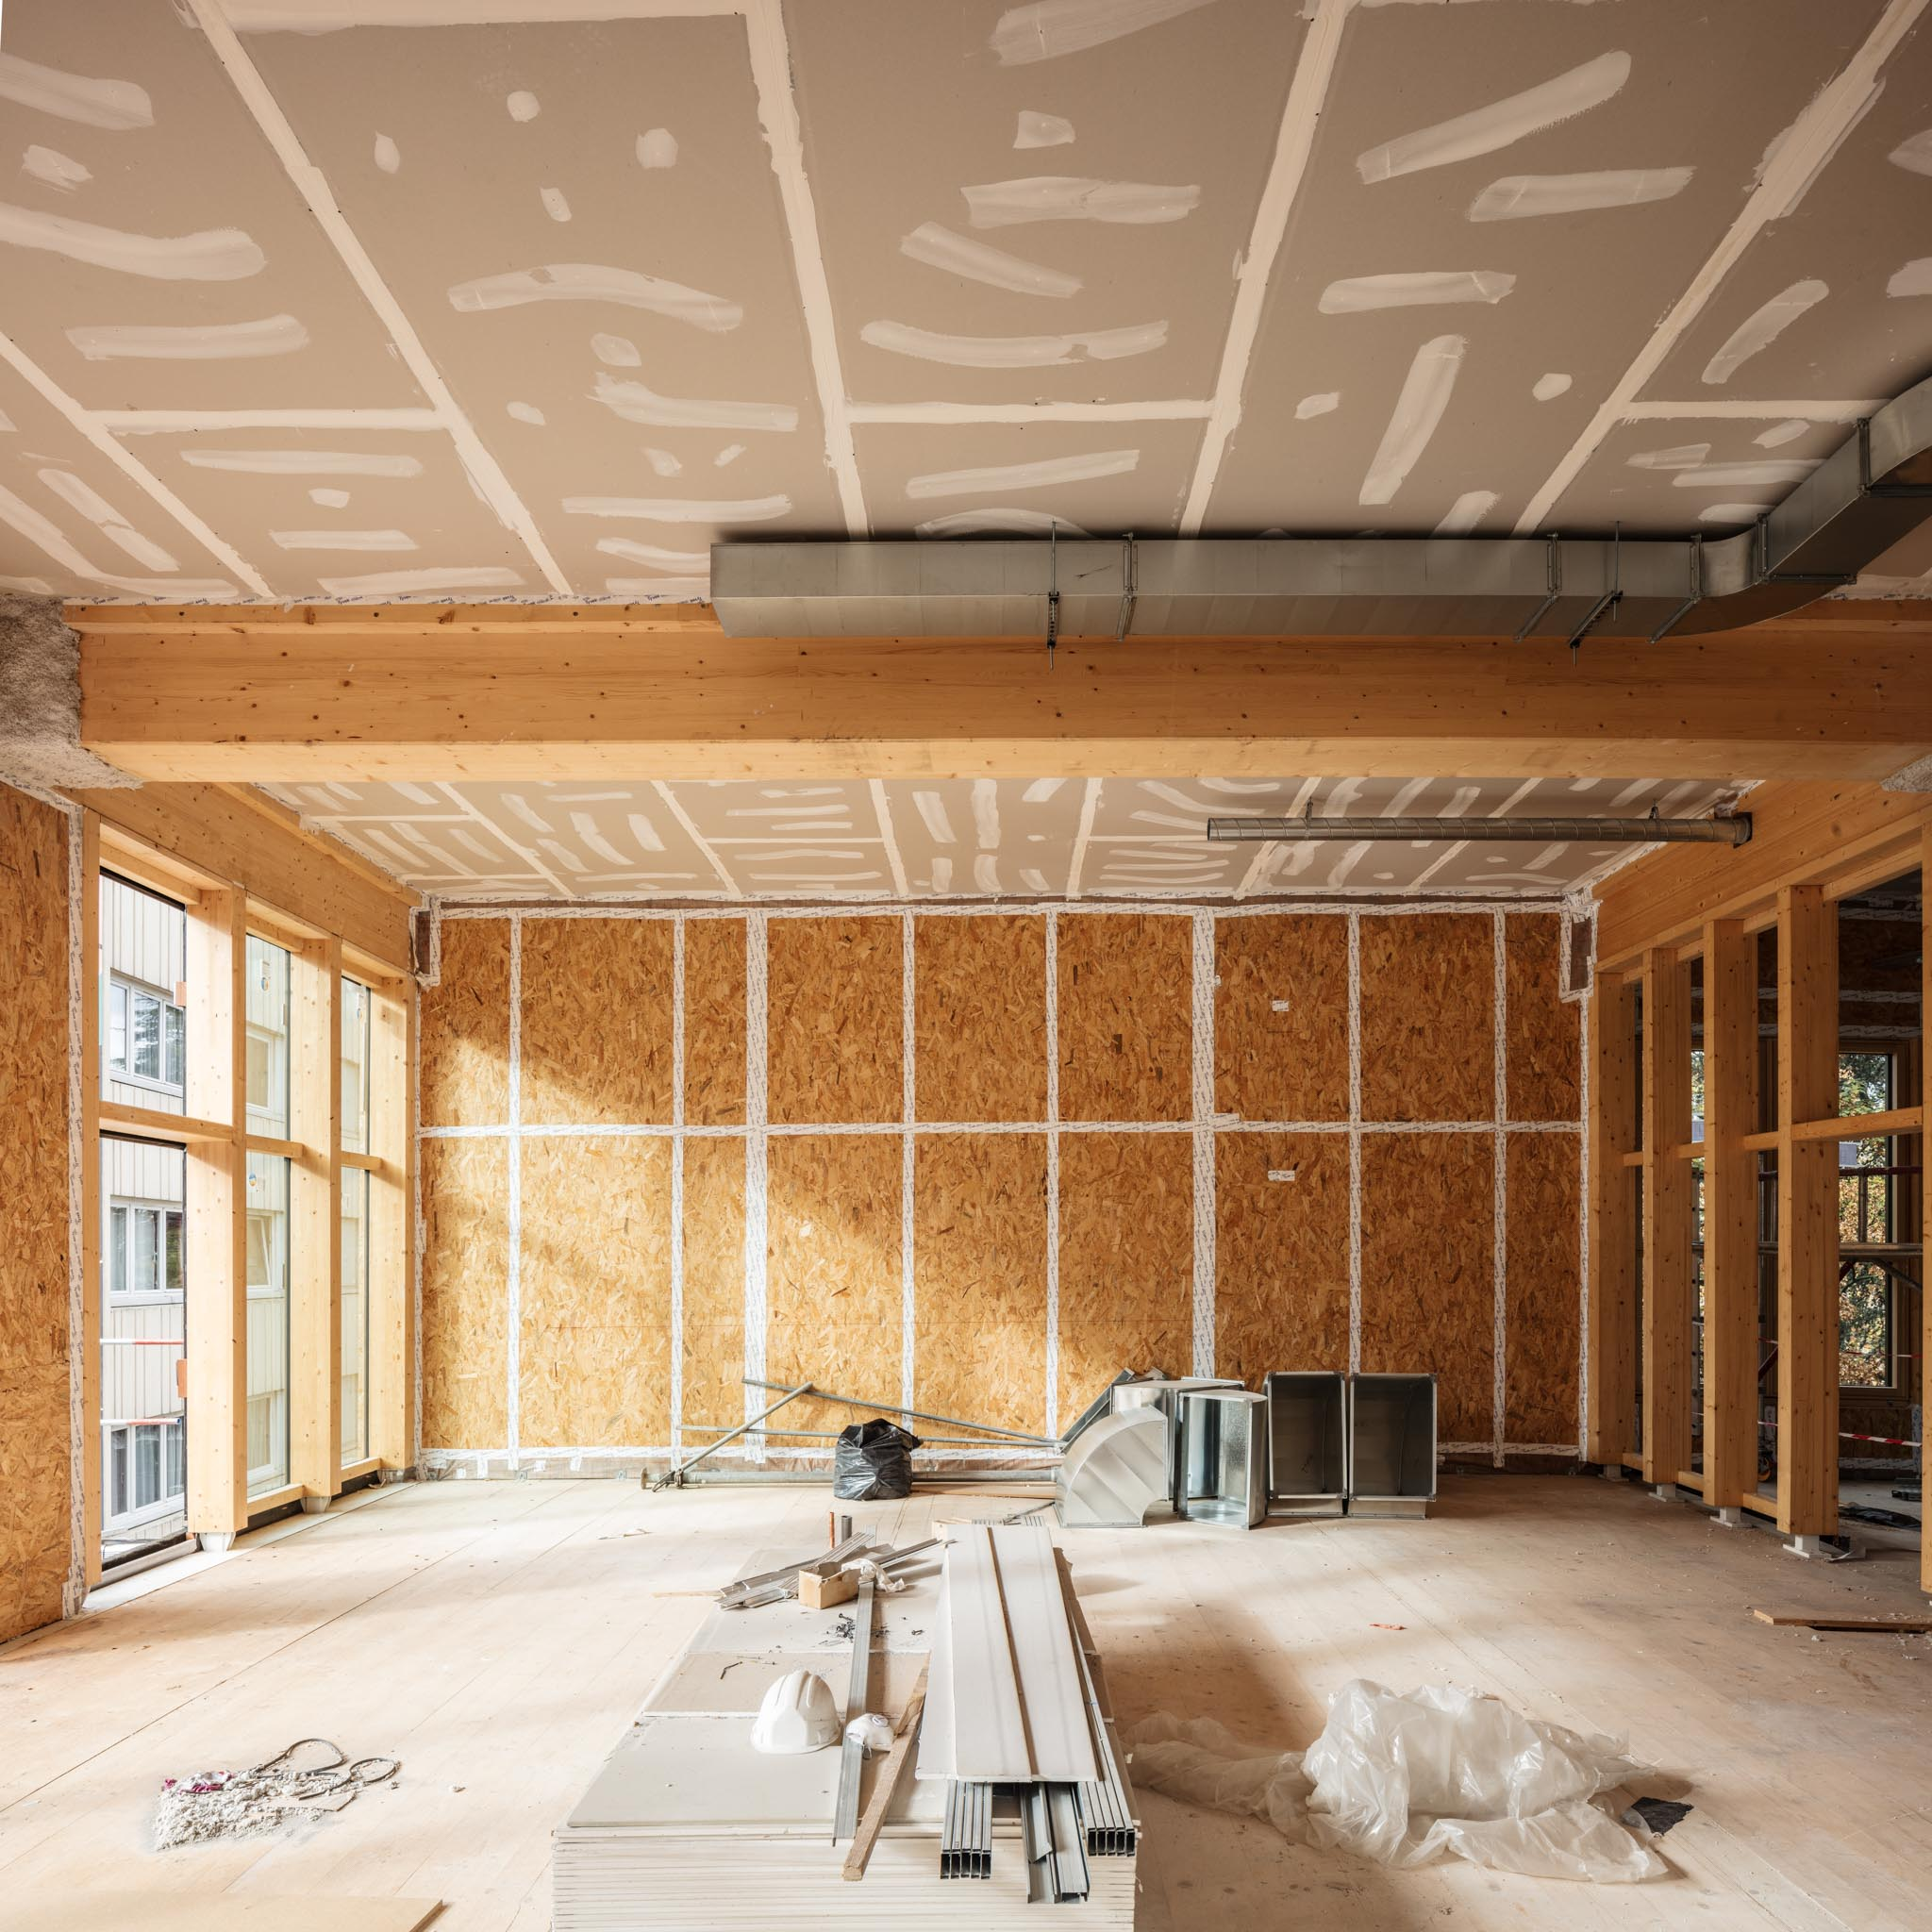 Ecole-Paris-Chantier-06.jpg